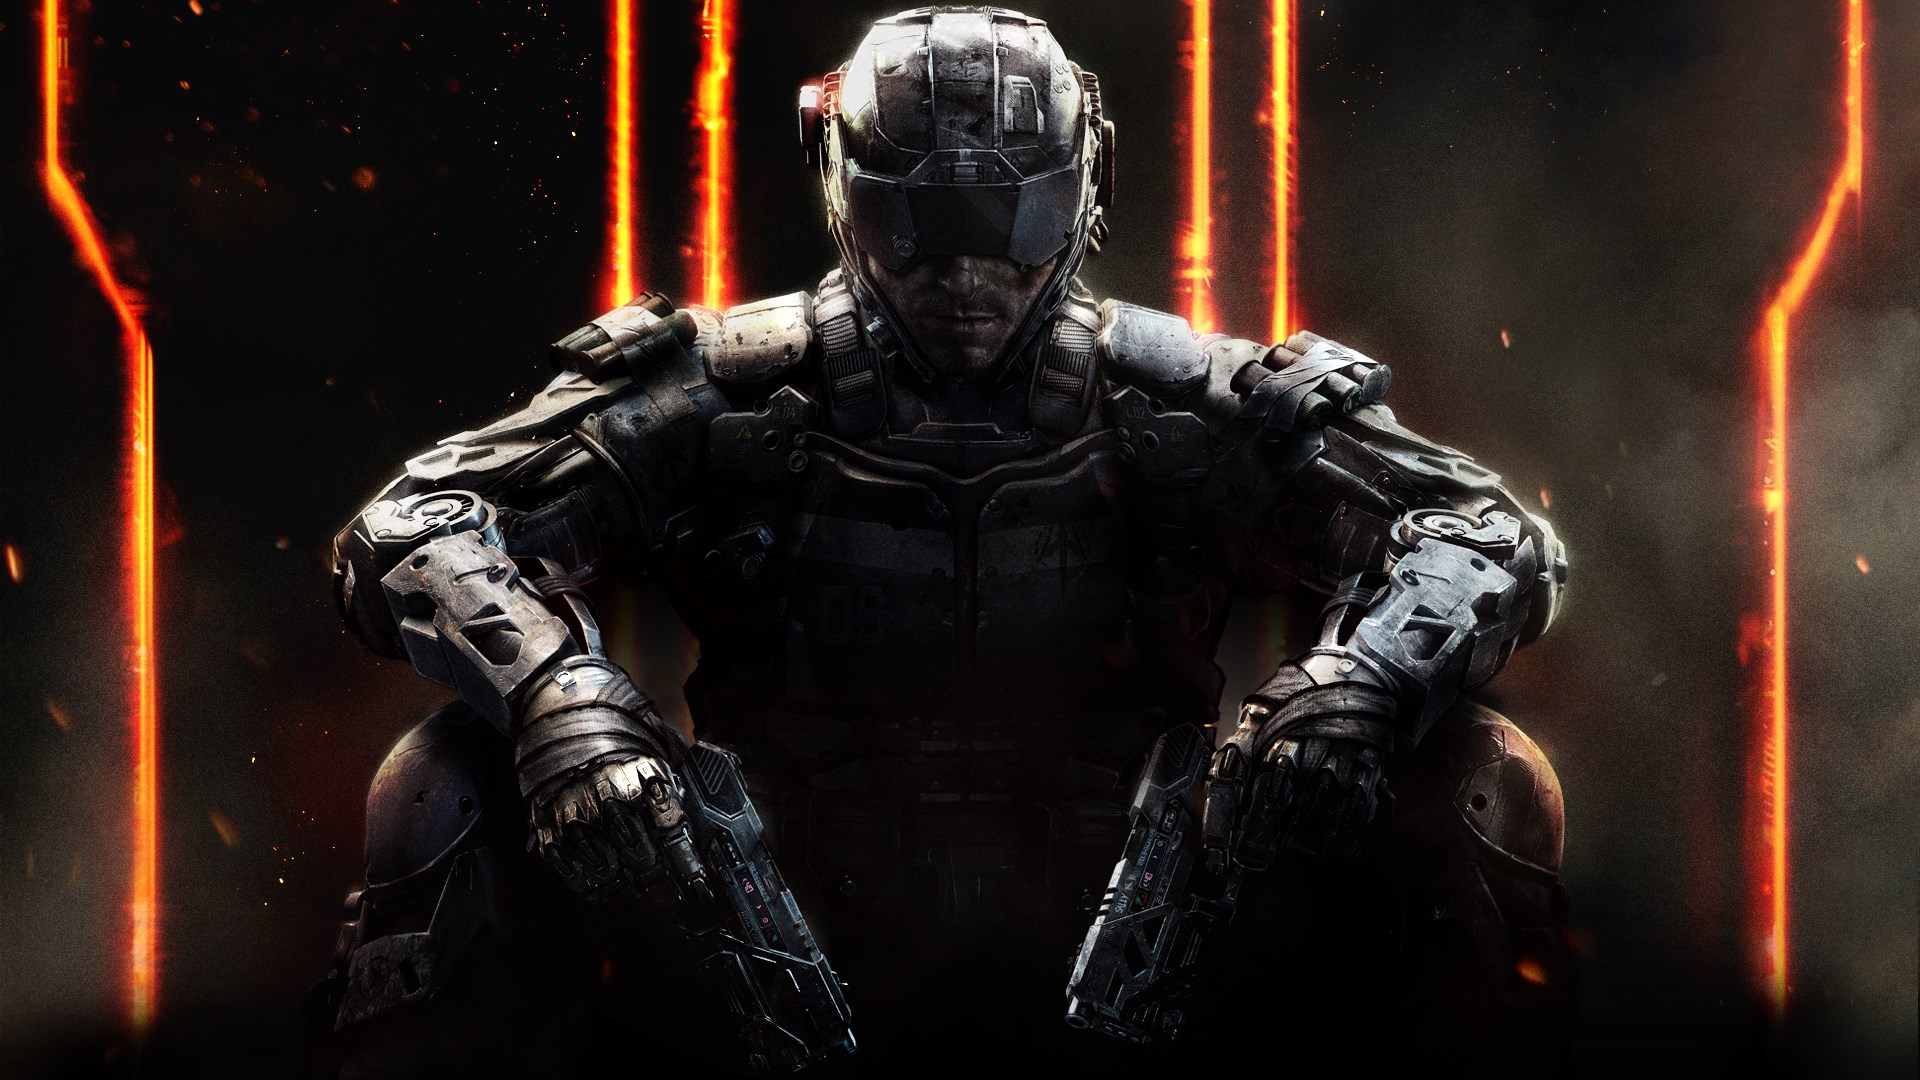 call of duty black ops 3 pc download compressed